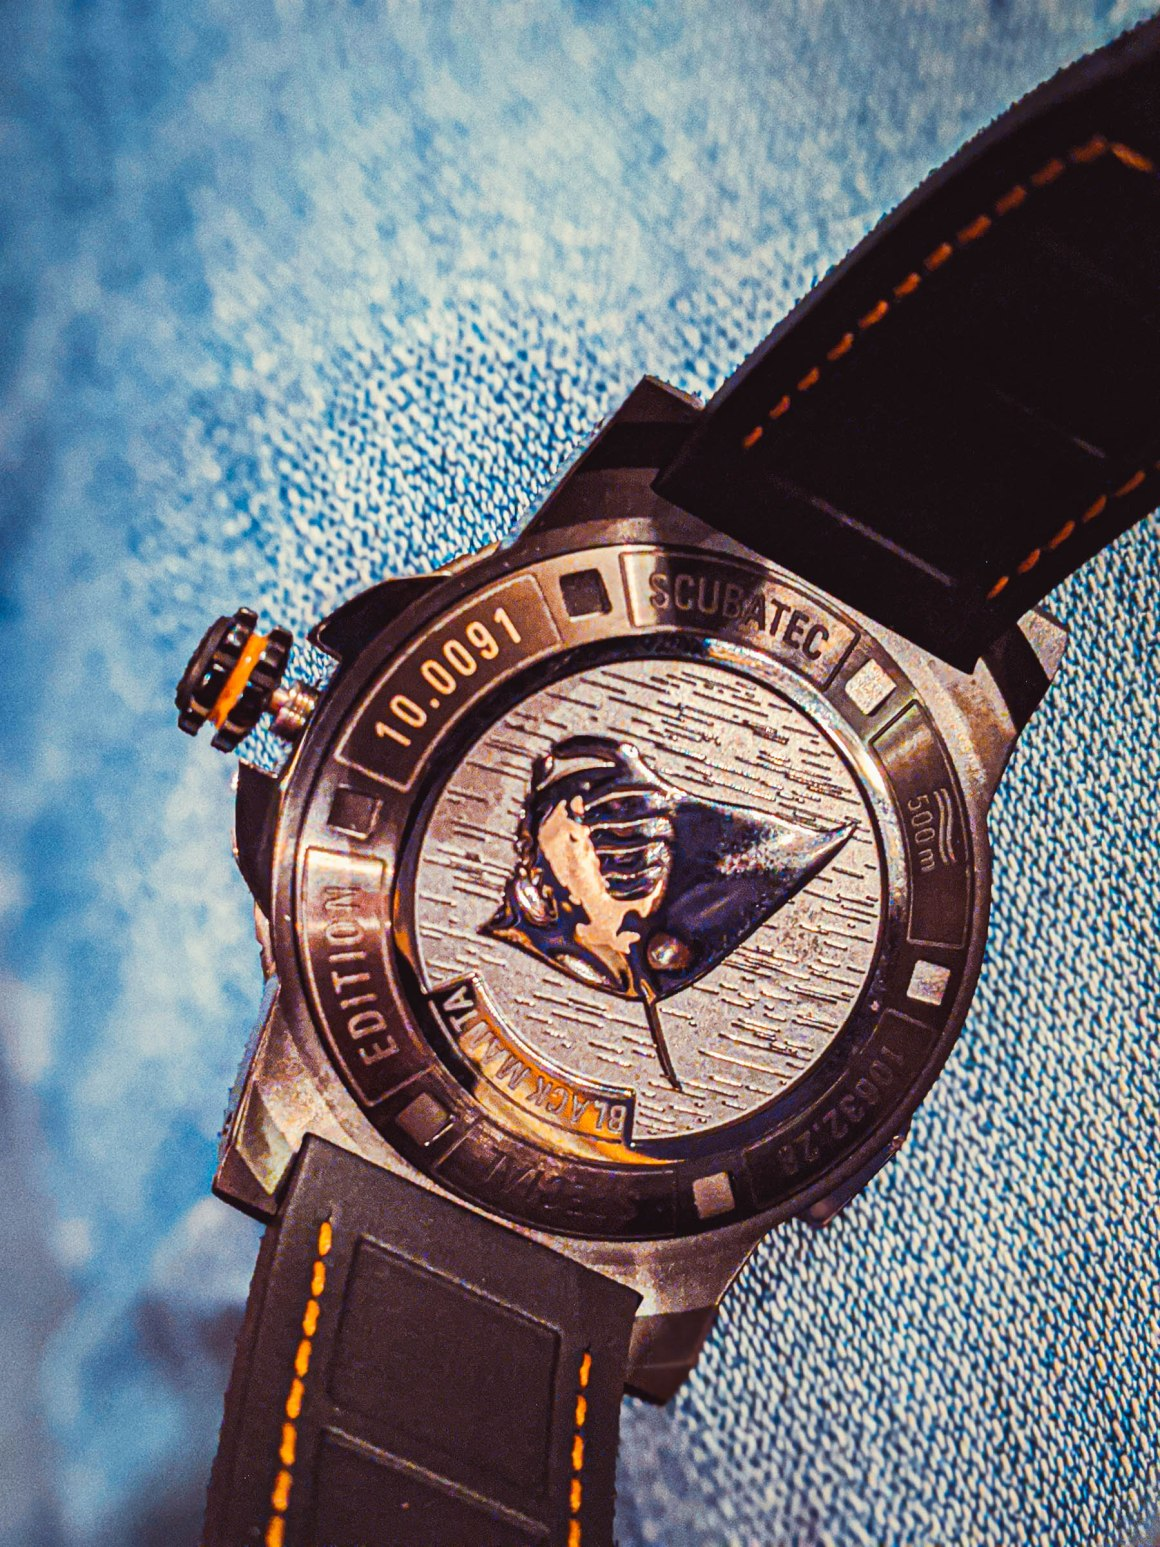 carl f bucherer, 1888, bucherer, india, laurent lecamp, larentlucerne, pashmina, timepieces, eyesforluxury, watches, panda watch, manta, black manta, recycled plastic, rose gold, steel, titanium, unisex watch, mens watch, womens watch, ethos watches, the imperial hotel, blue room, leather strap, flyback, ceramic dial, annual calendar, luxury timepieces, luxury watches, new delhi, india, made of lucerne, made in switzerland, wordswork pr, wordswork public relations